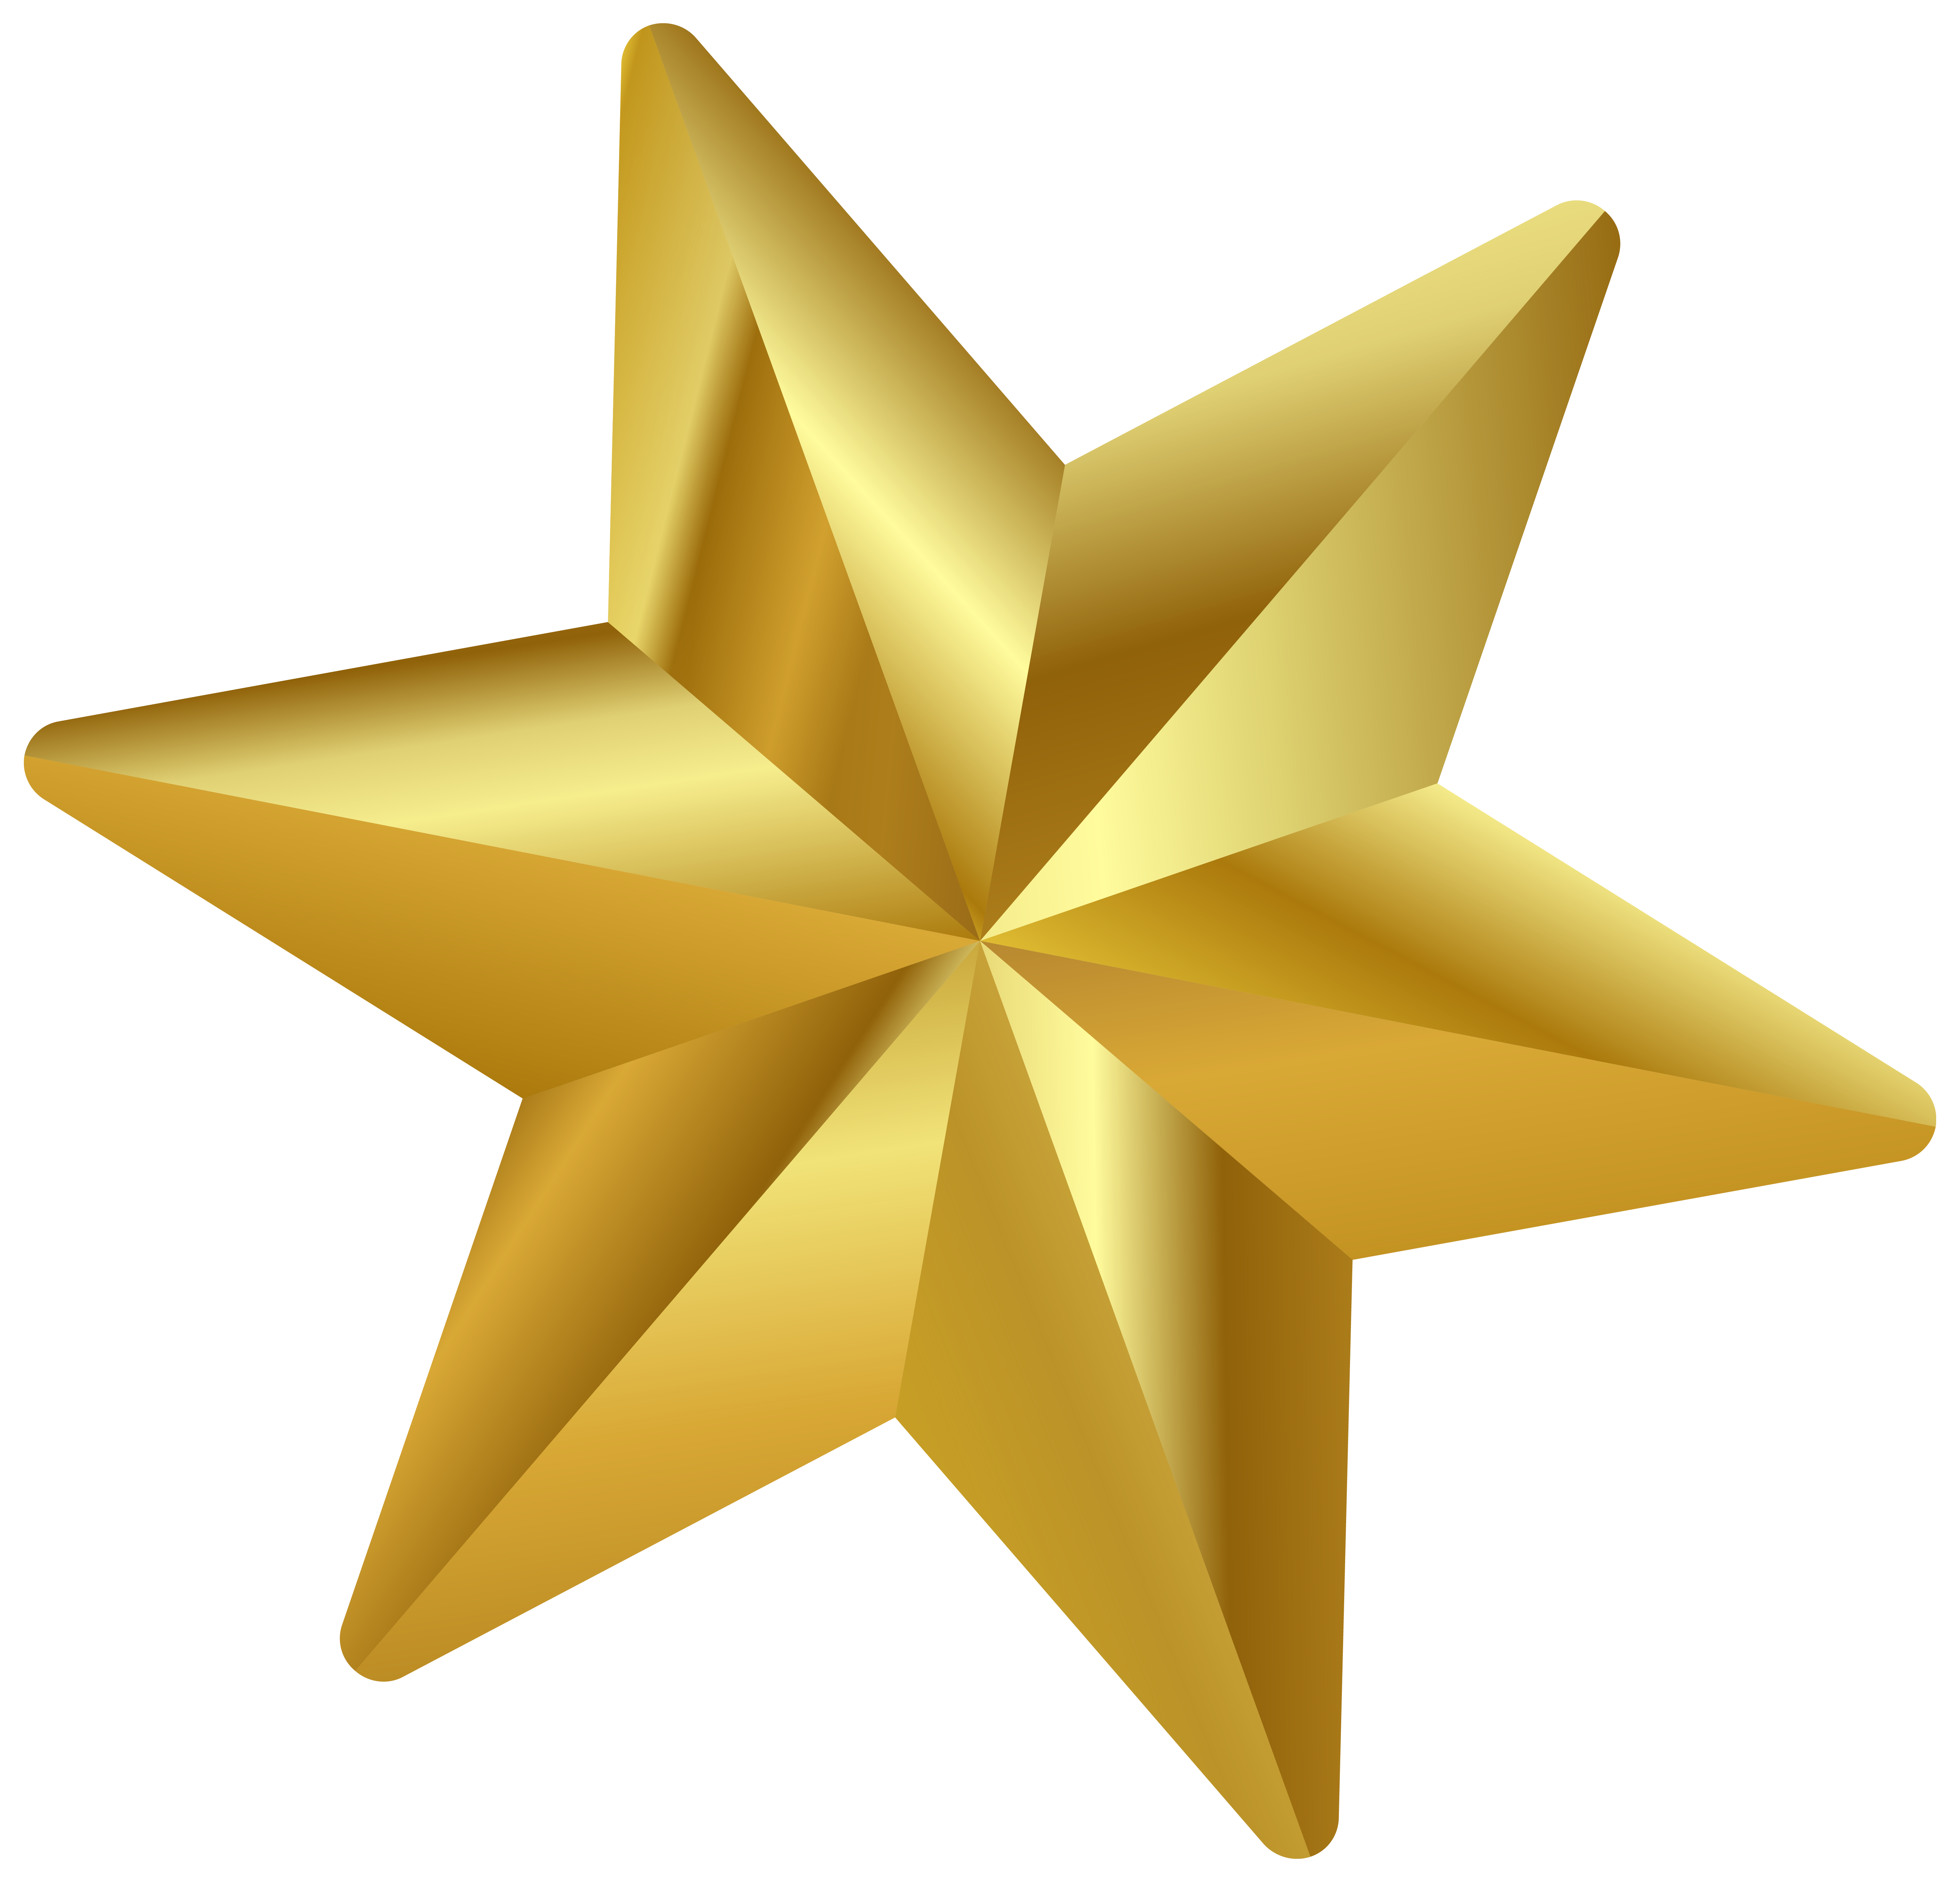 Christmas star png transparent background. Clipart image gallery yopriceville